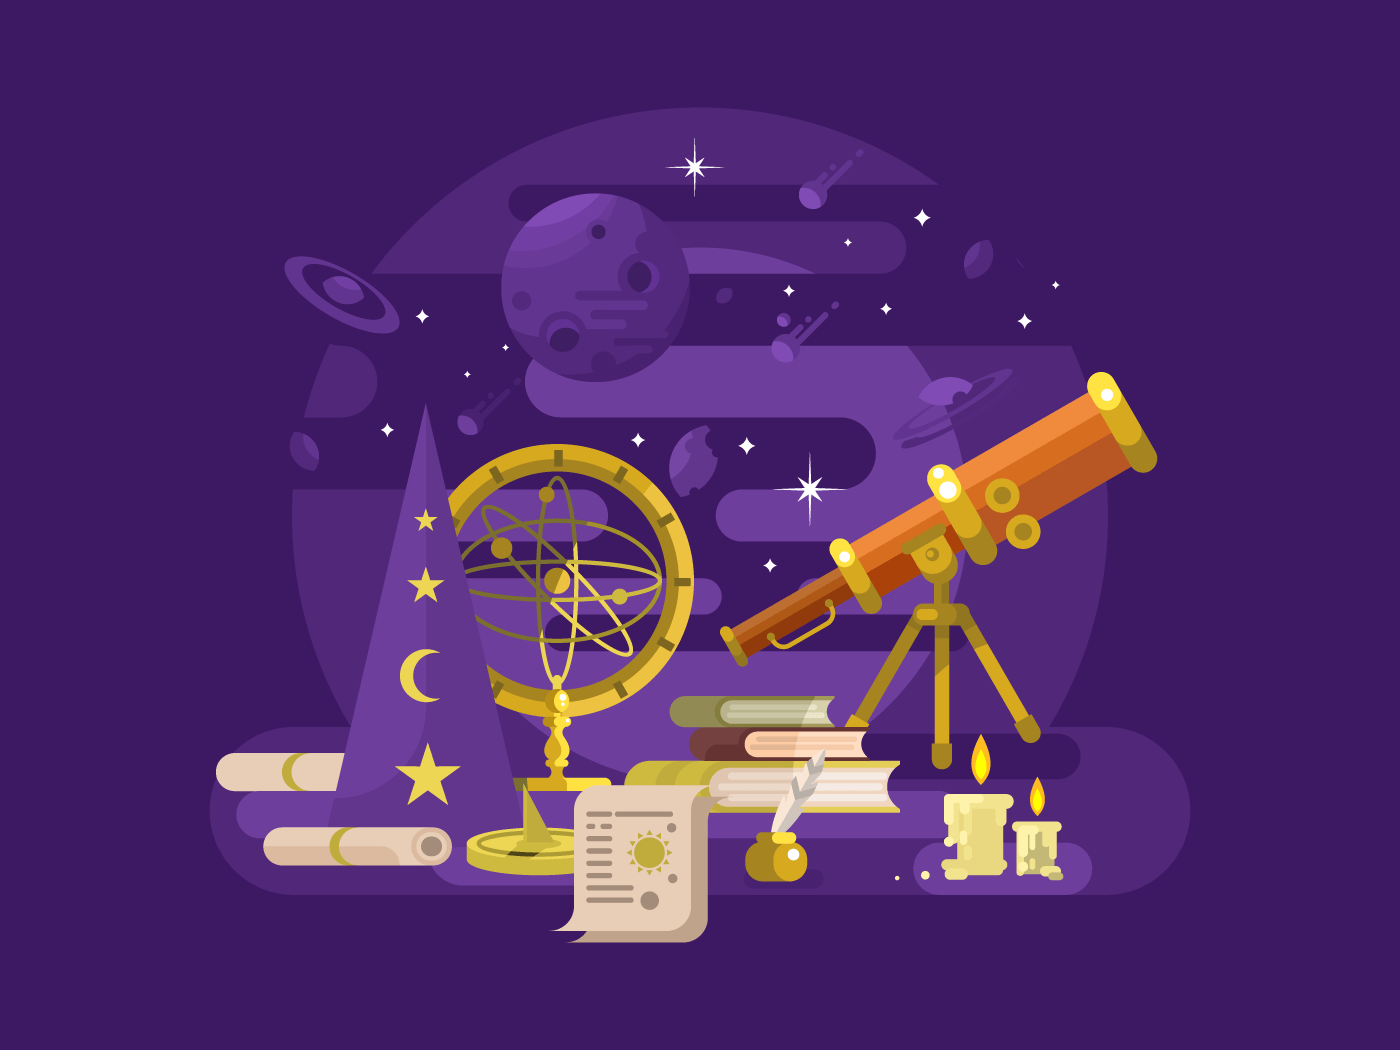 Astronomy design retro flat vector illustration